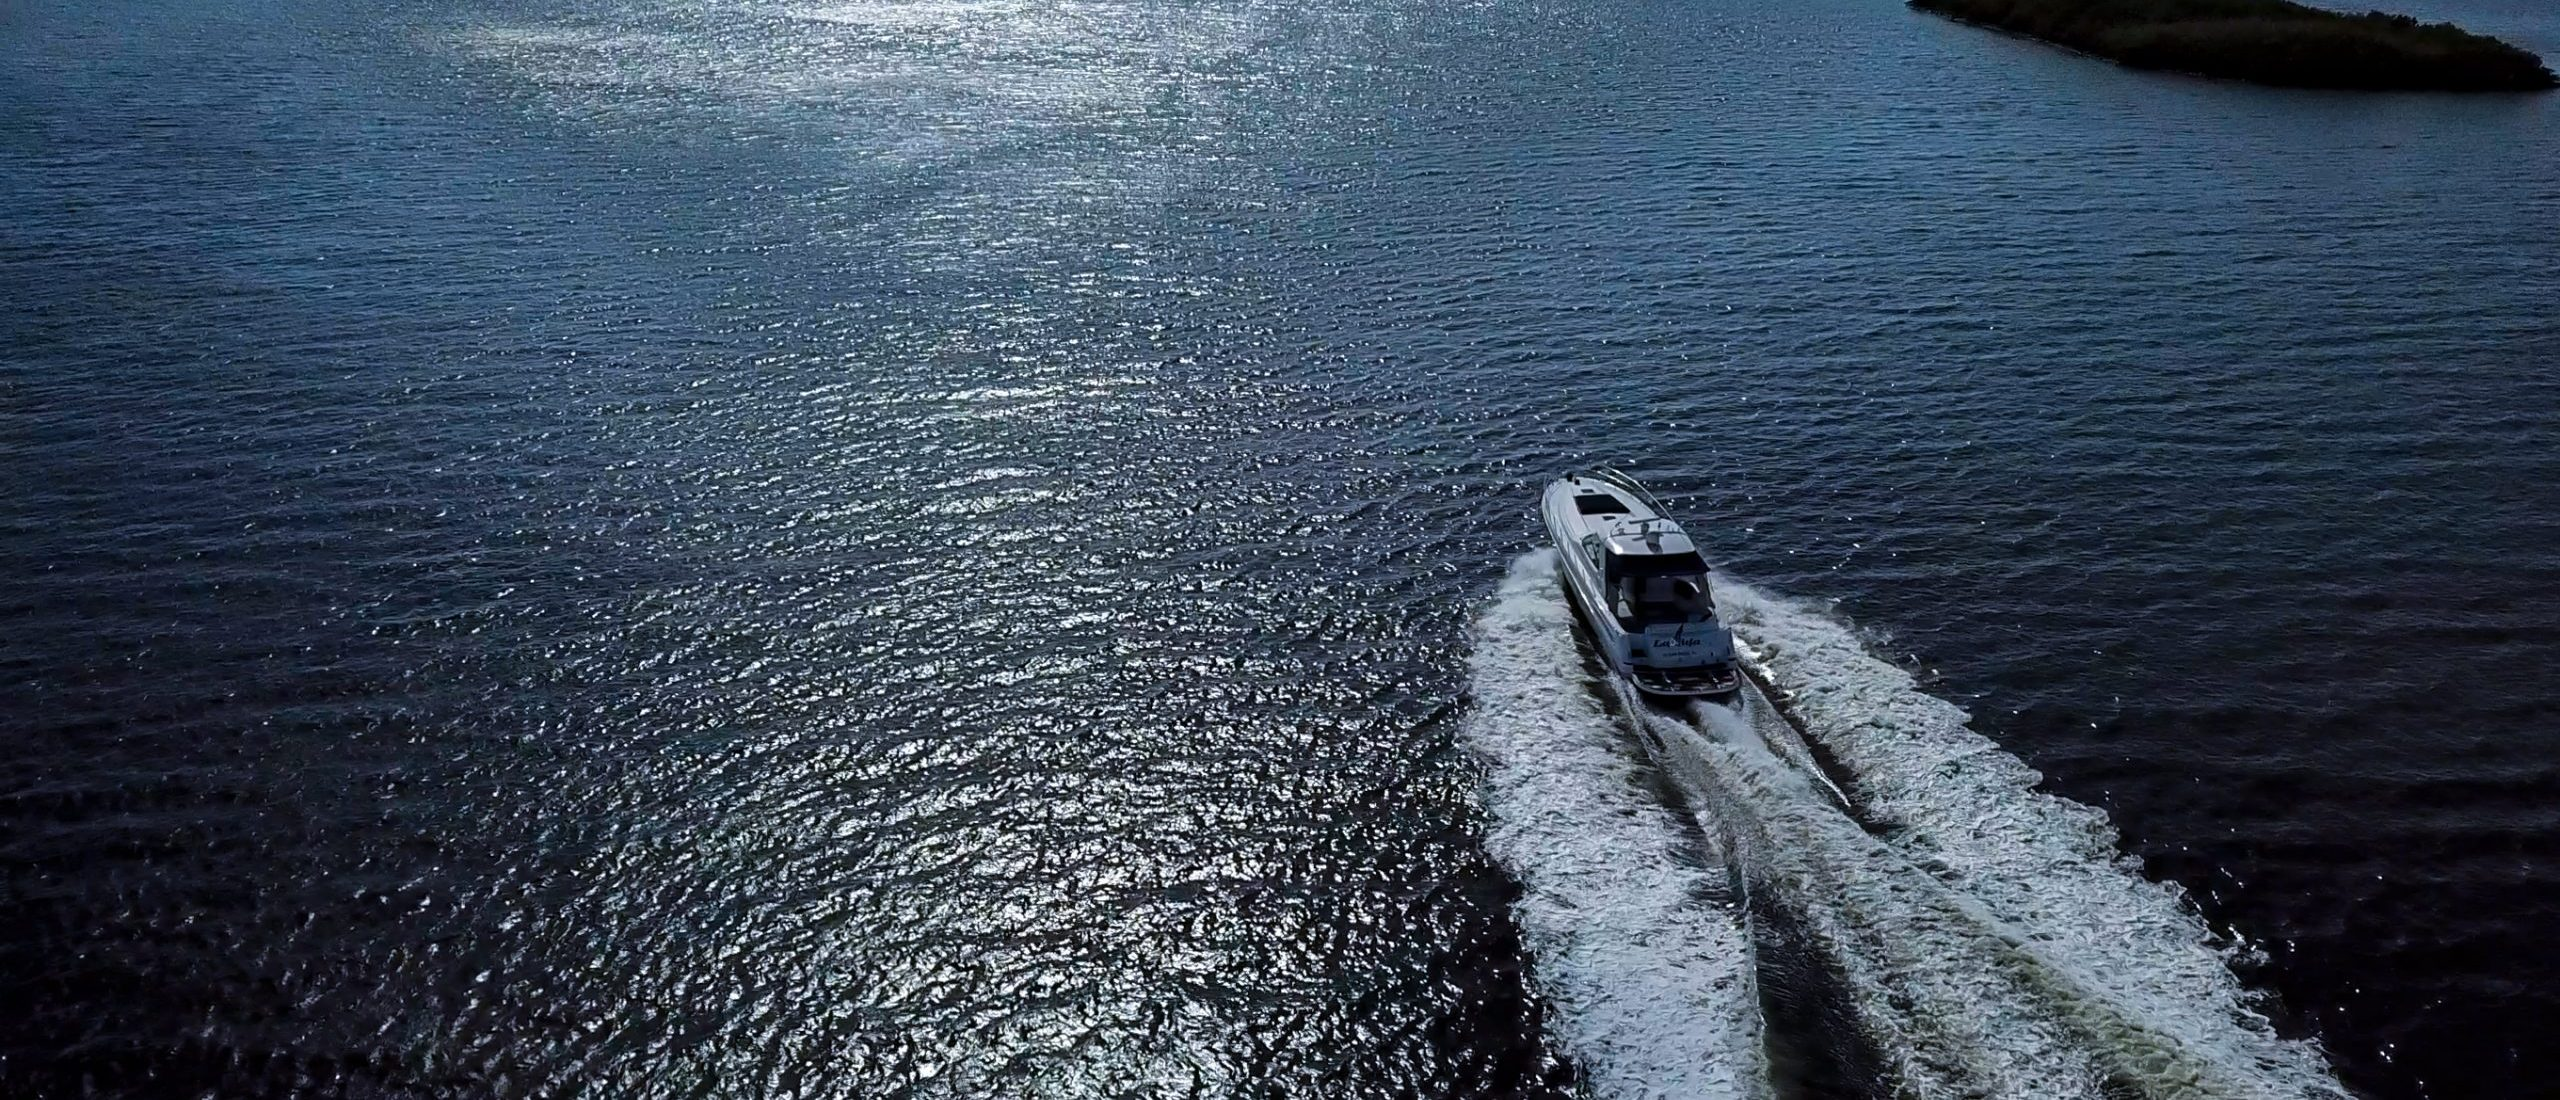 Aerial shot of motor yacht